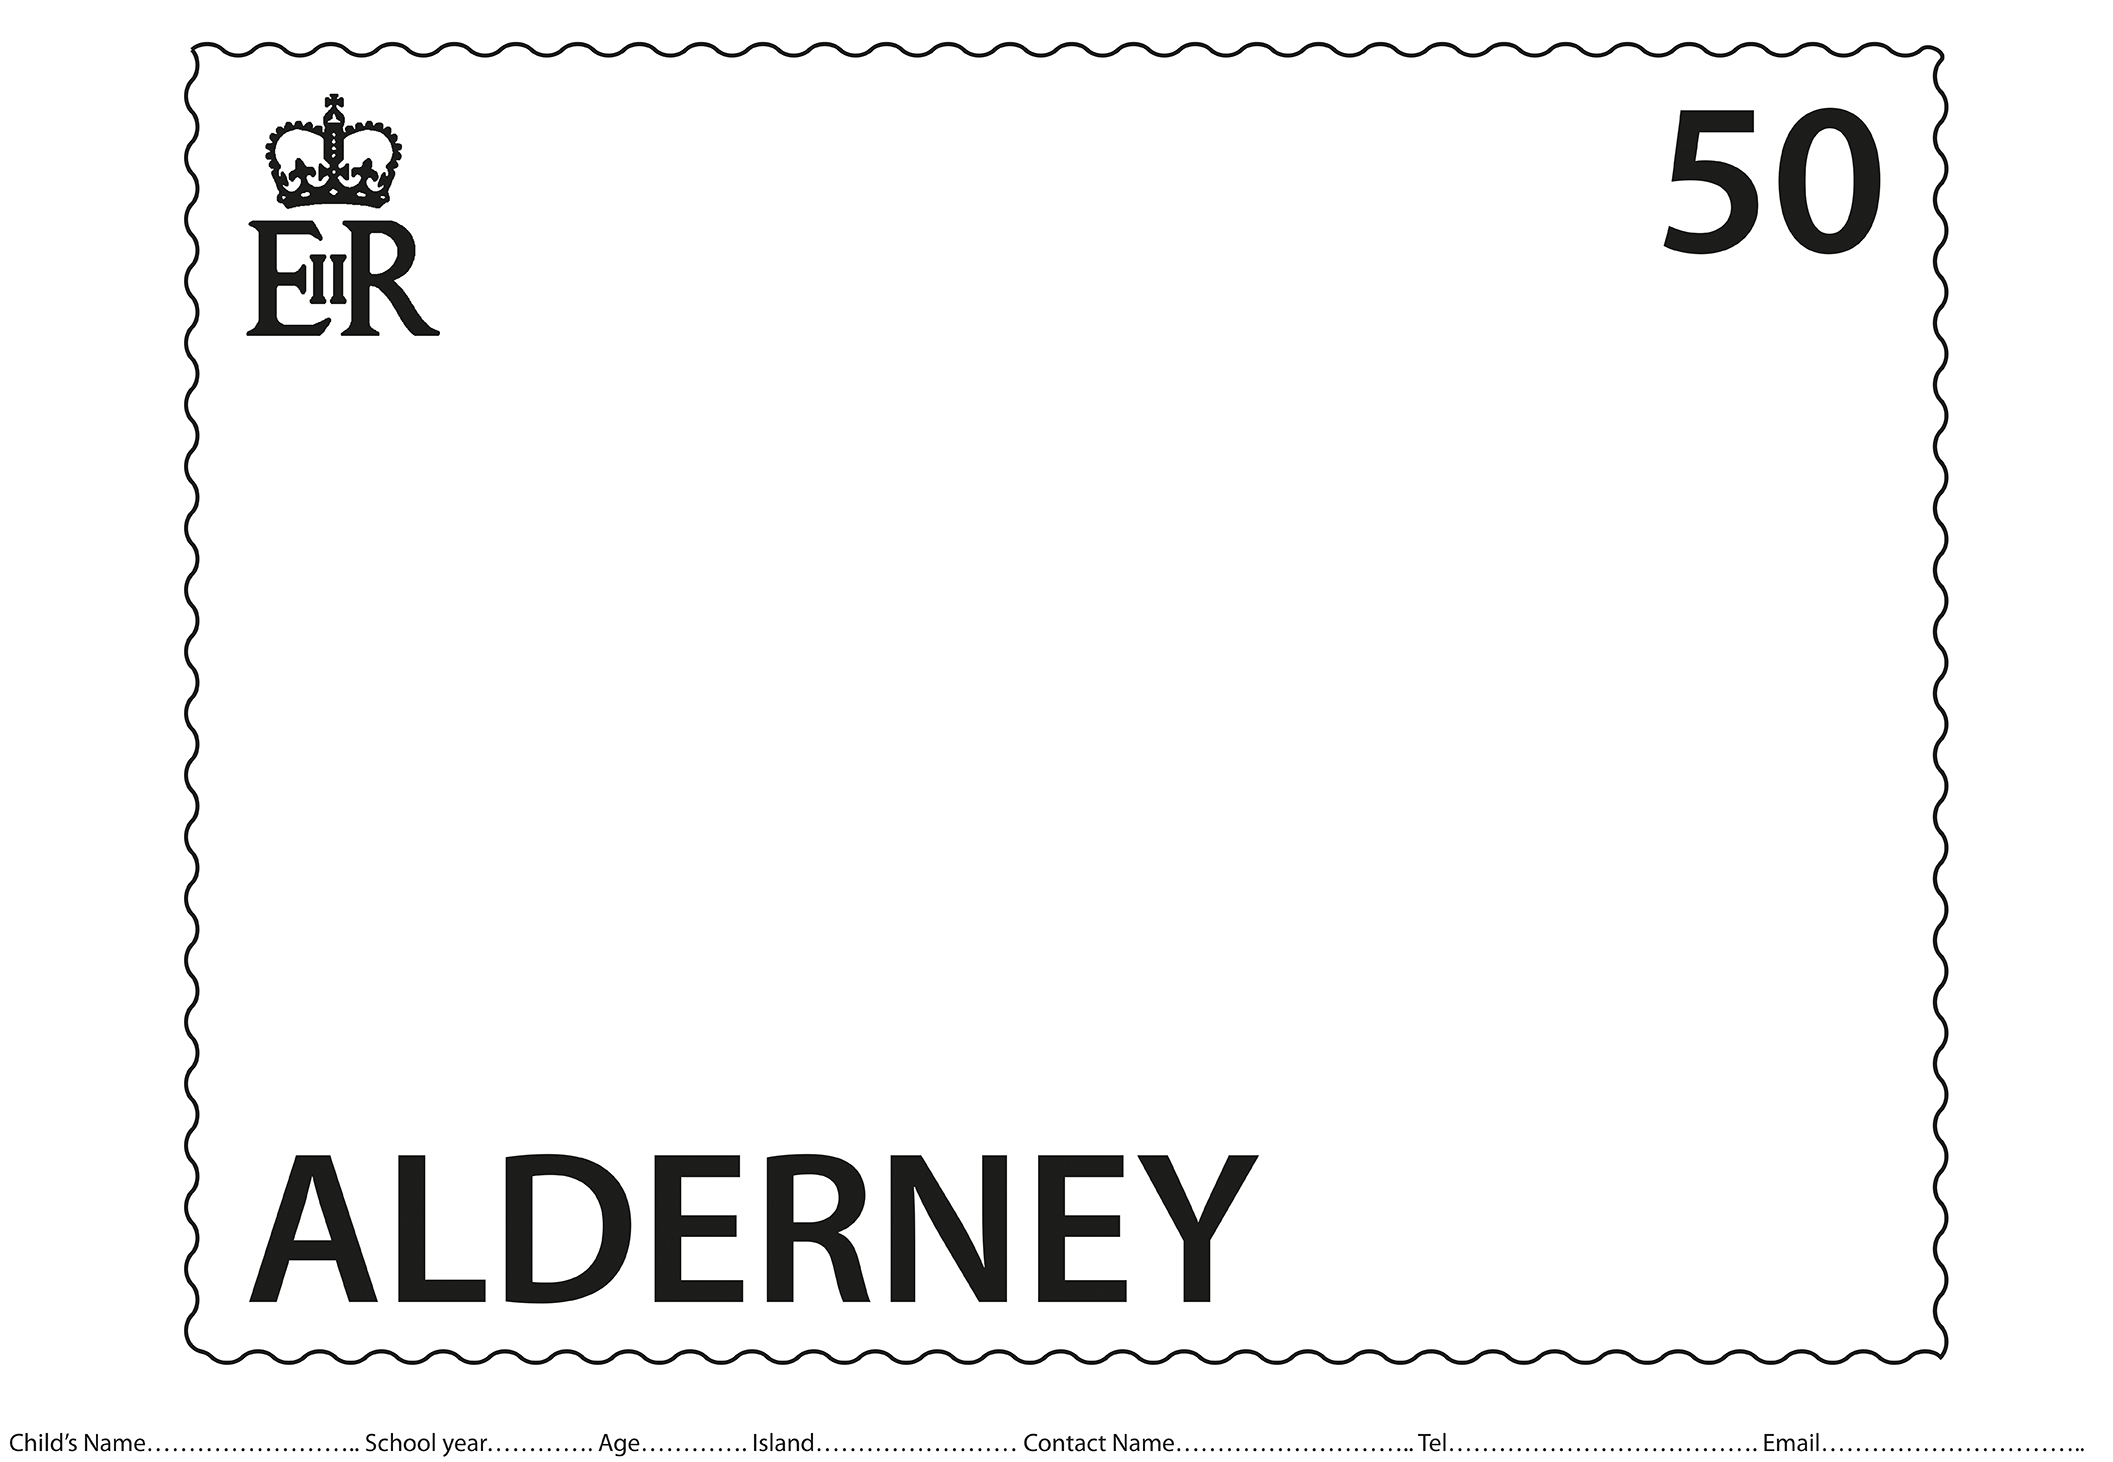 Local Children Invited To Put Their Stamp On Alderneyspirit Charity Competition,Colors That Go With Light French Gray